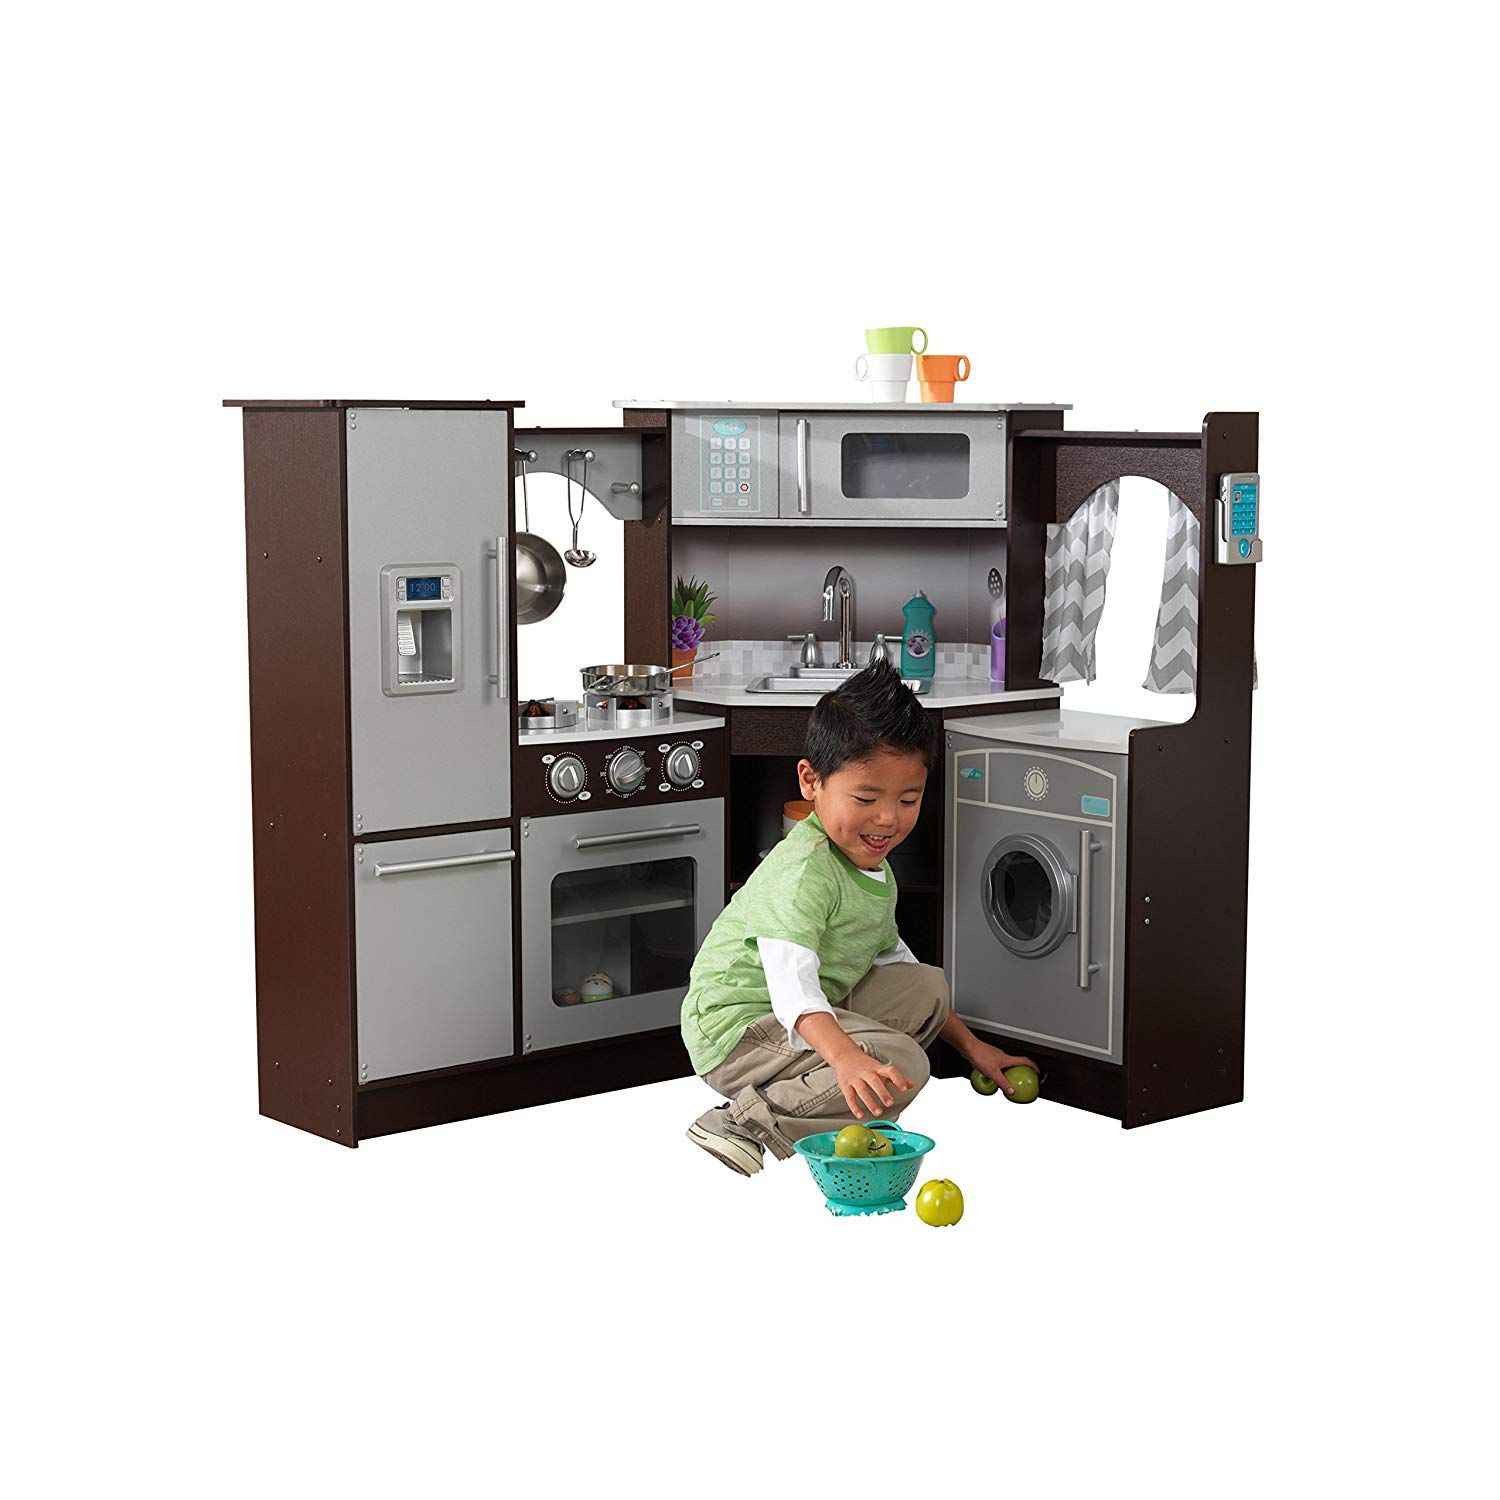 The 8 Best Kitchen Sets To Buy For Kids In 2019